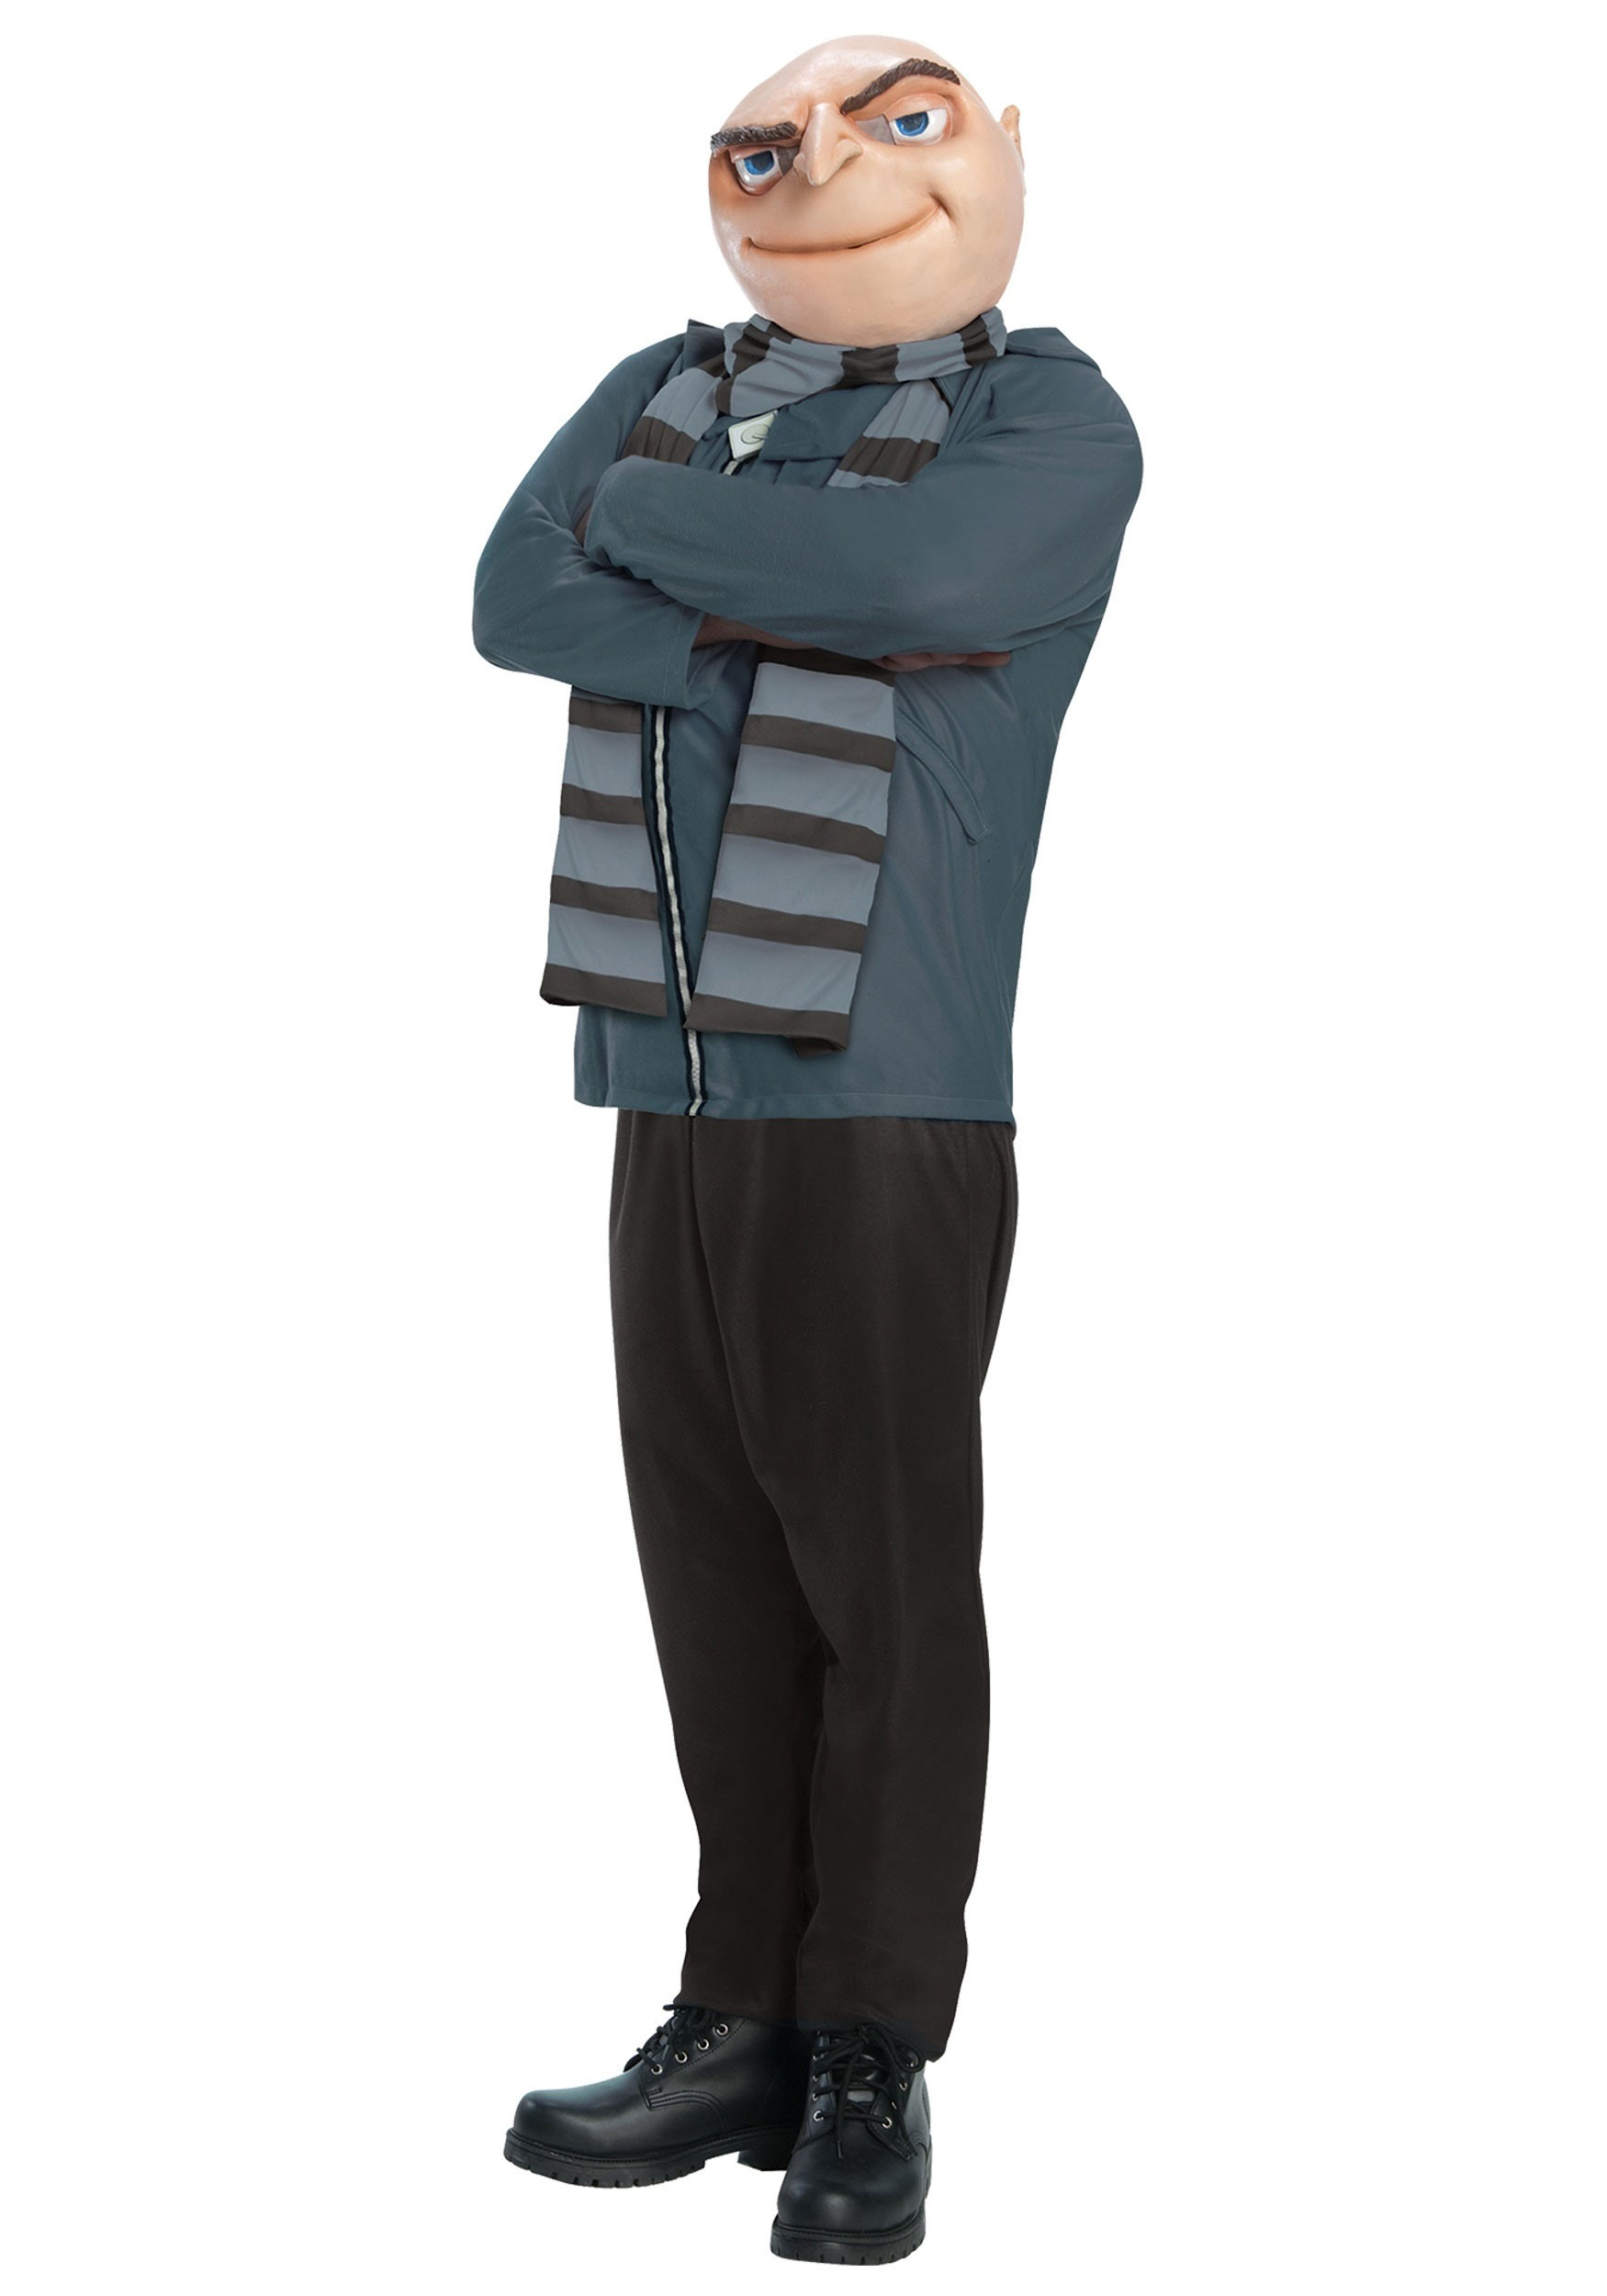 Adult Gru Costume  sc 1 st  Halloween Costumes UK & Minion Costumes